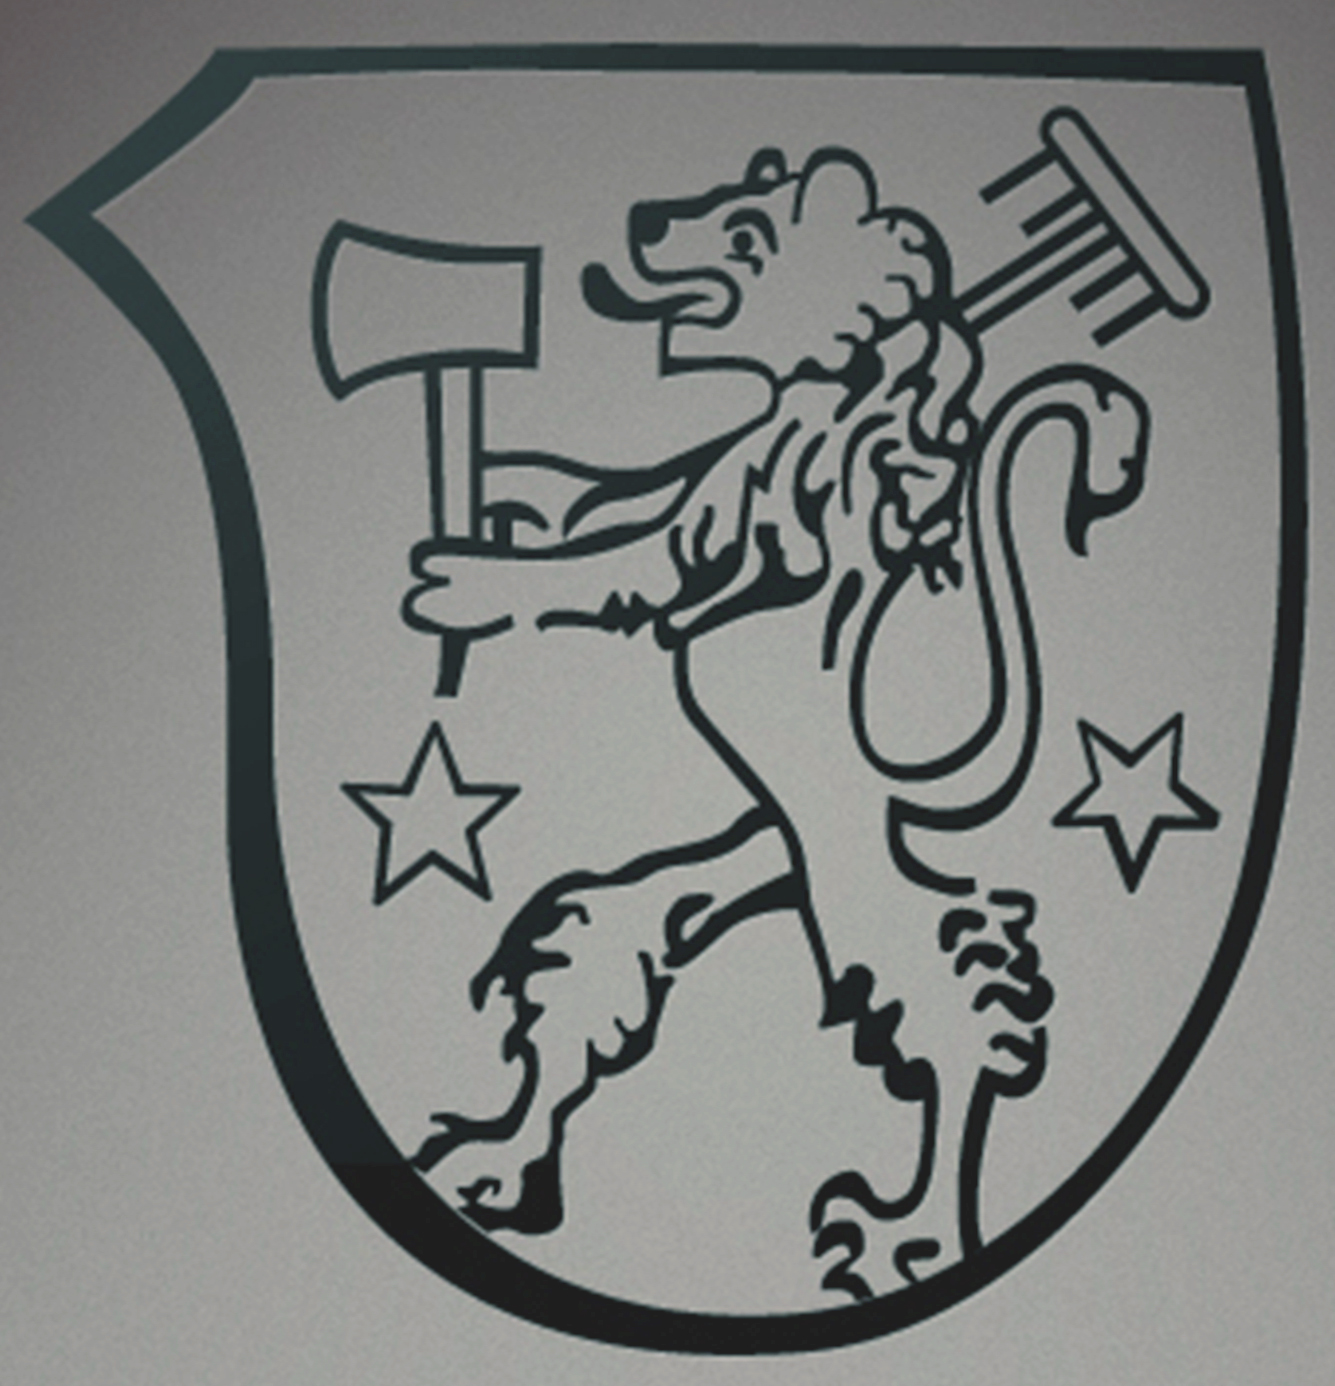 The HEUER Coat of Arms